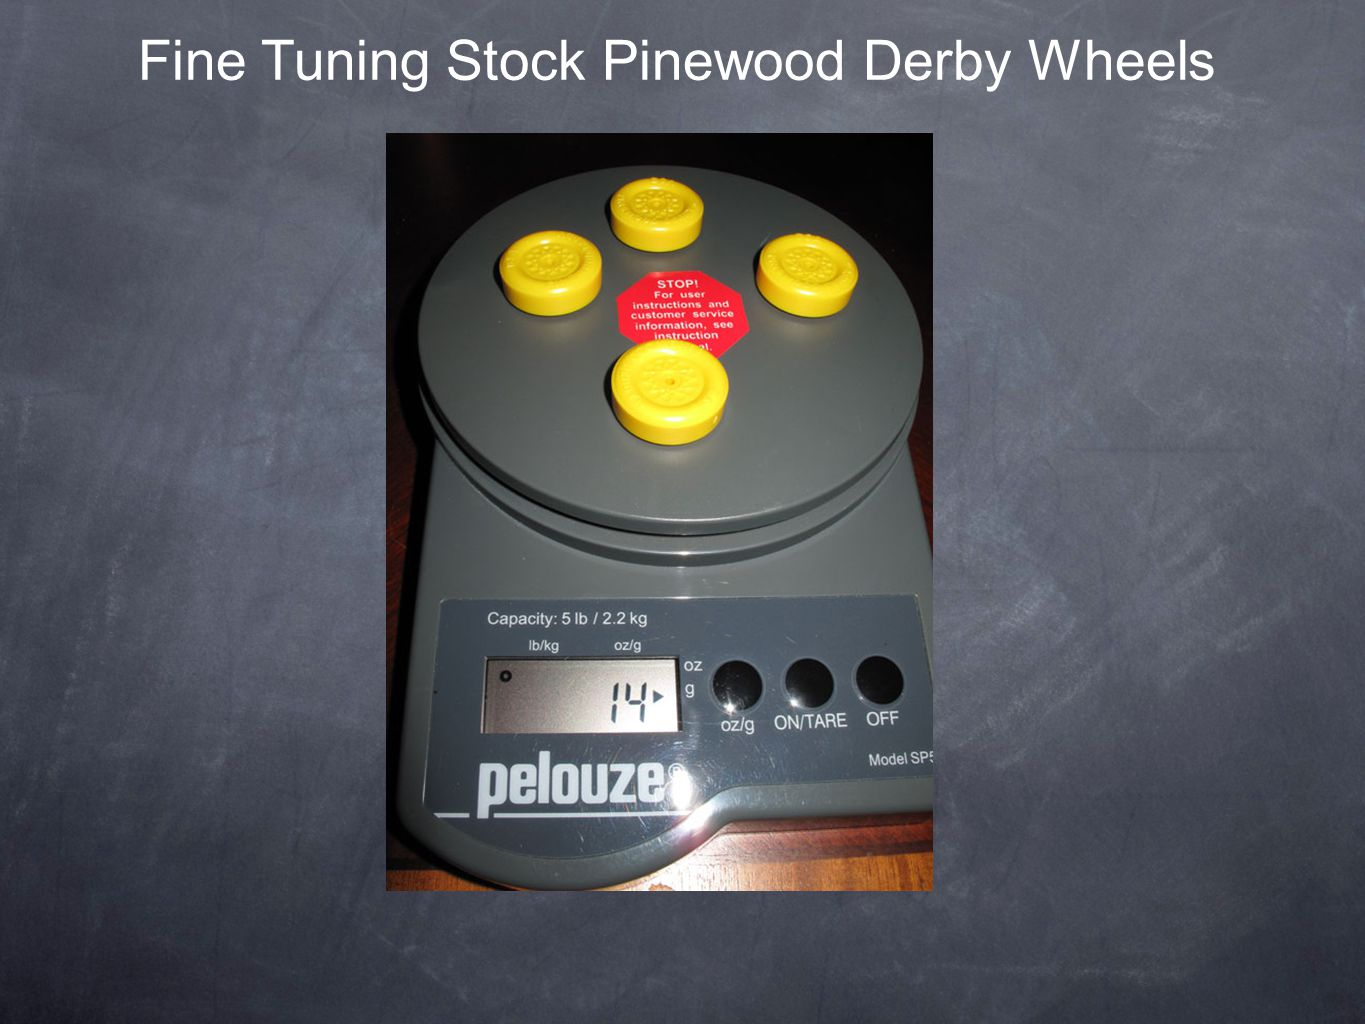 Fine Tuning Stock Pinewood Derby Wheels